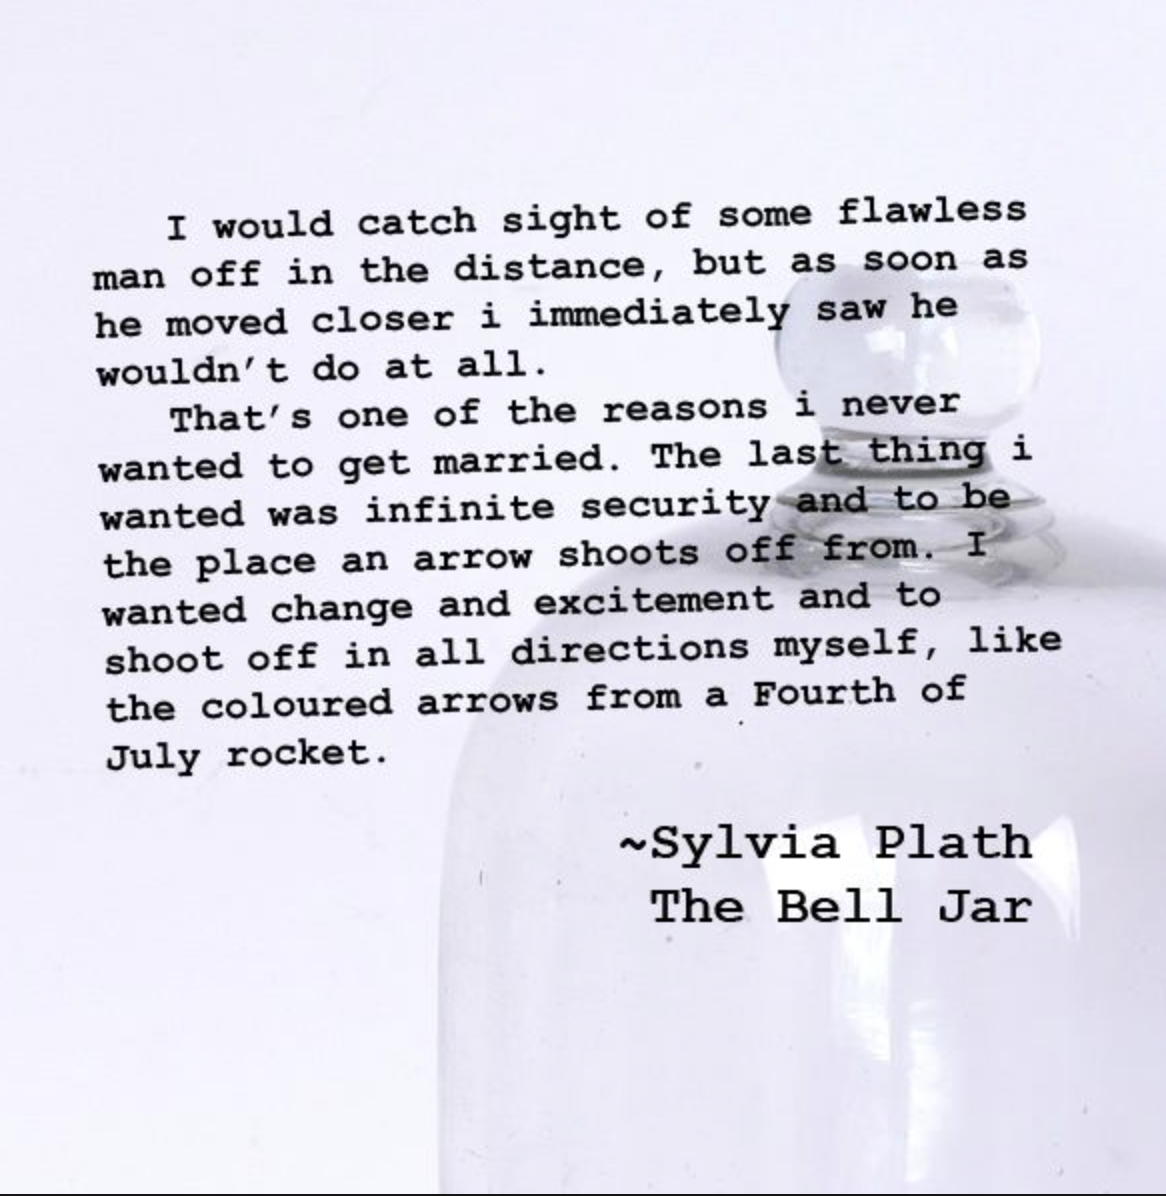 Sylvia Plath and the depression continuum